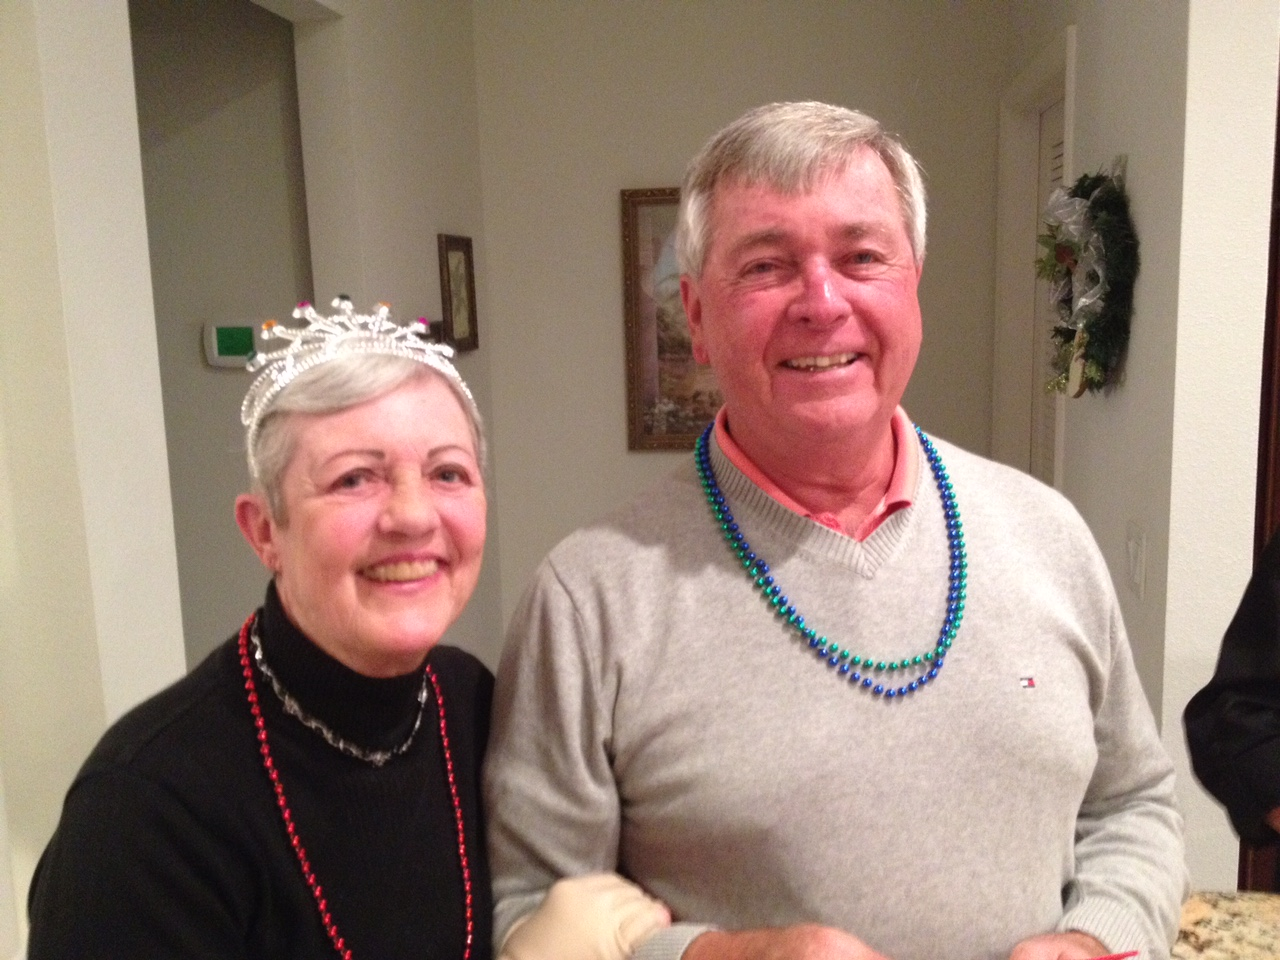 Mardi Gras Party 2014. Remembering the Good Times<br /> With Deepest Sympathy